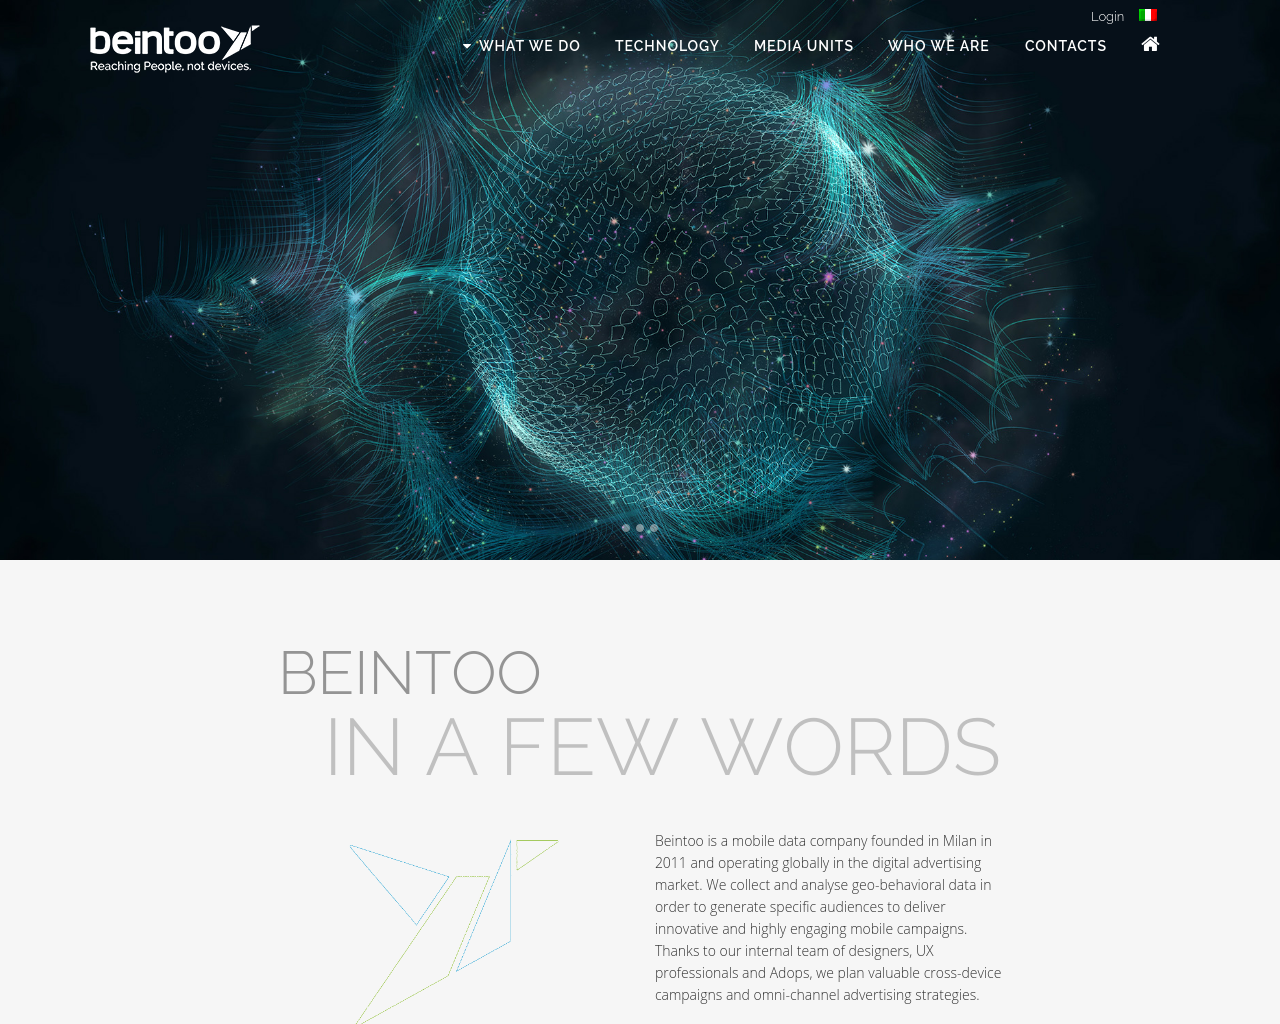 BeInToo-Advertising-Reviews-Pricing